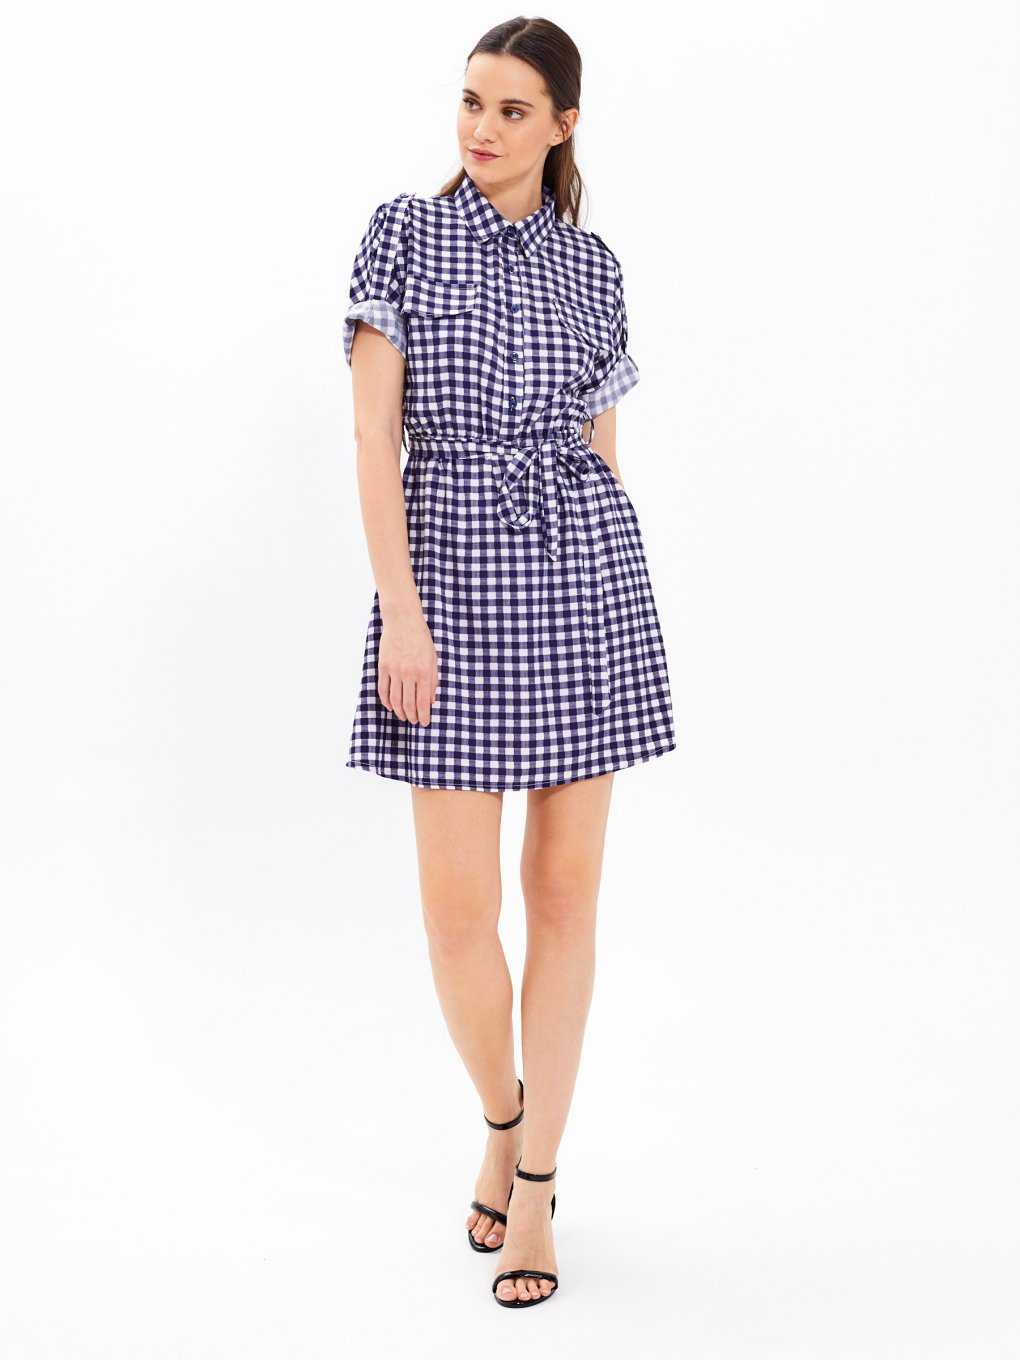 Gingham shirt dress